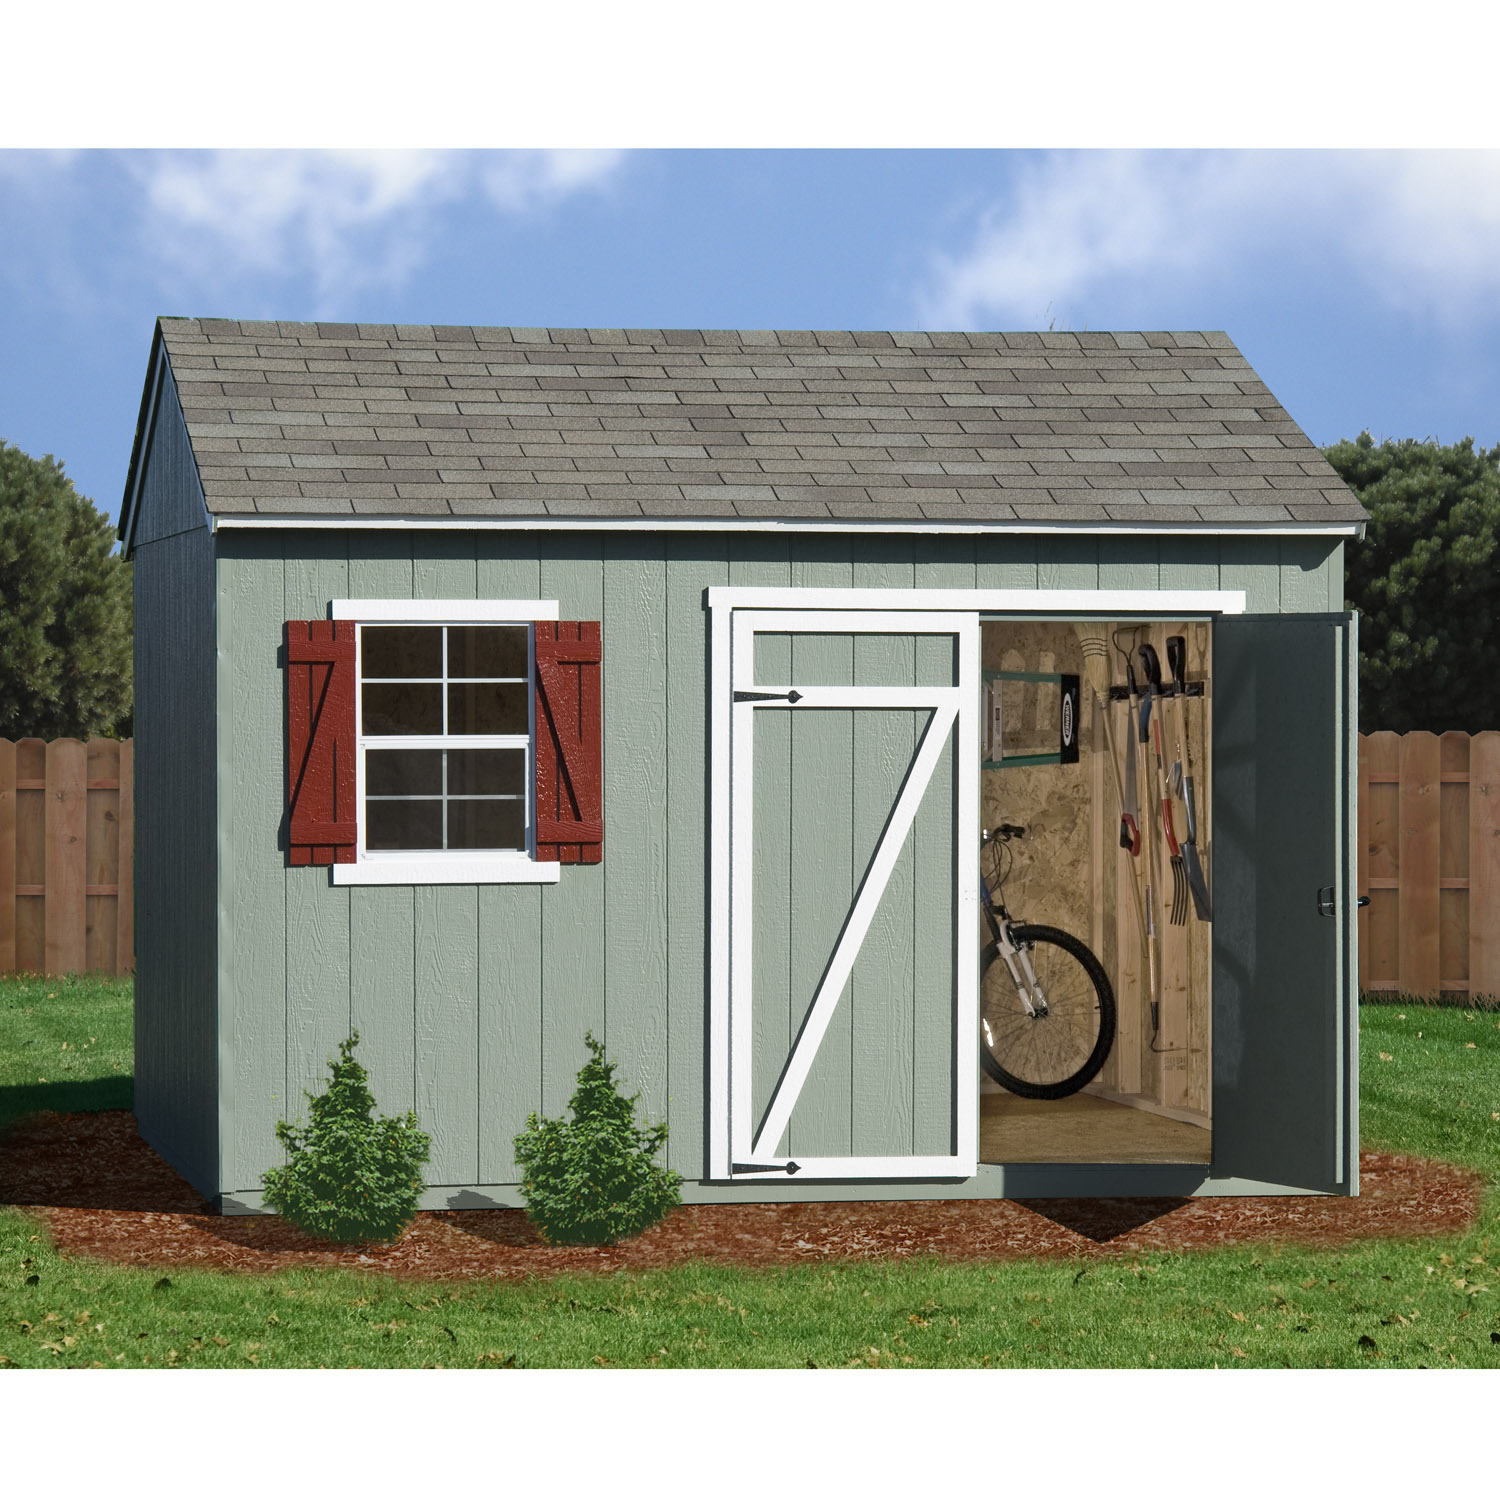 morgan wood co sale me s little heartland buildings portable storage side sheds outdoor near kits shed for lowes garage home rubbermaid tool used decor cottage depot raleigh horizontal